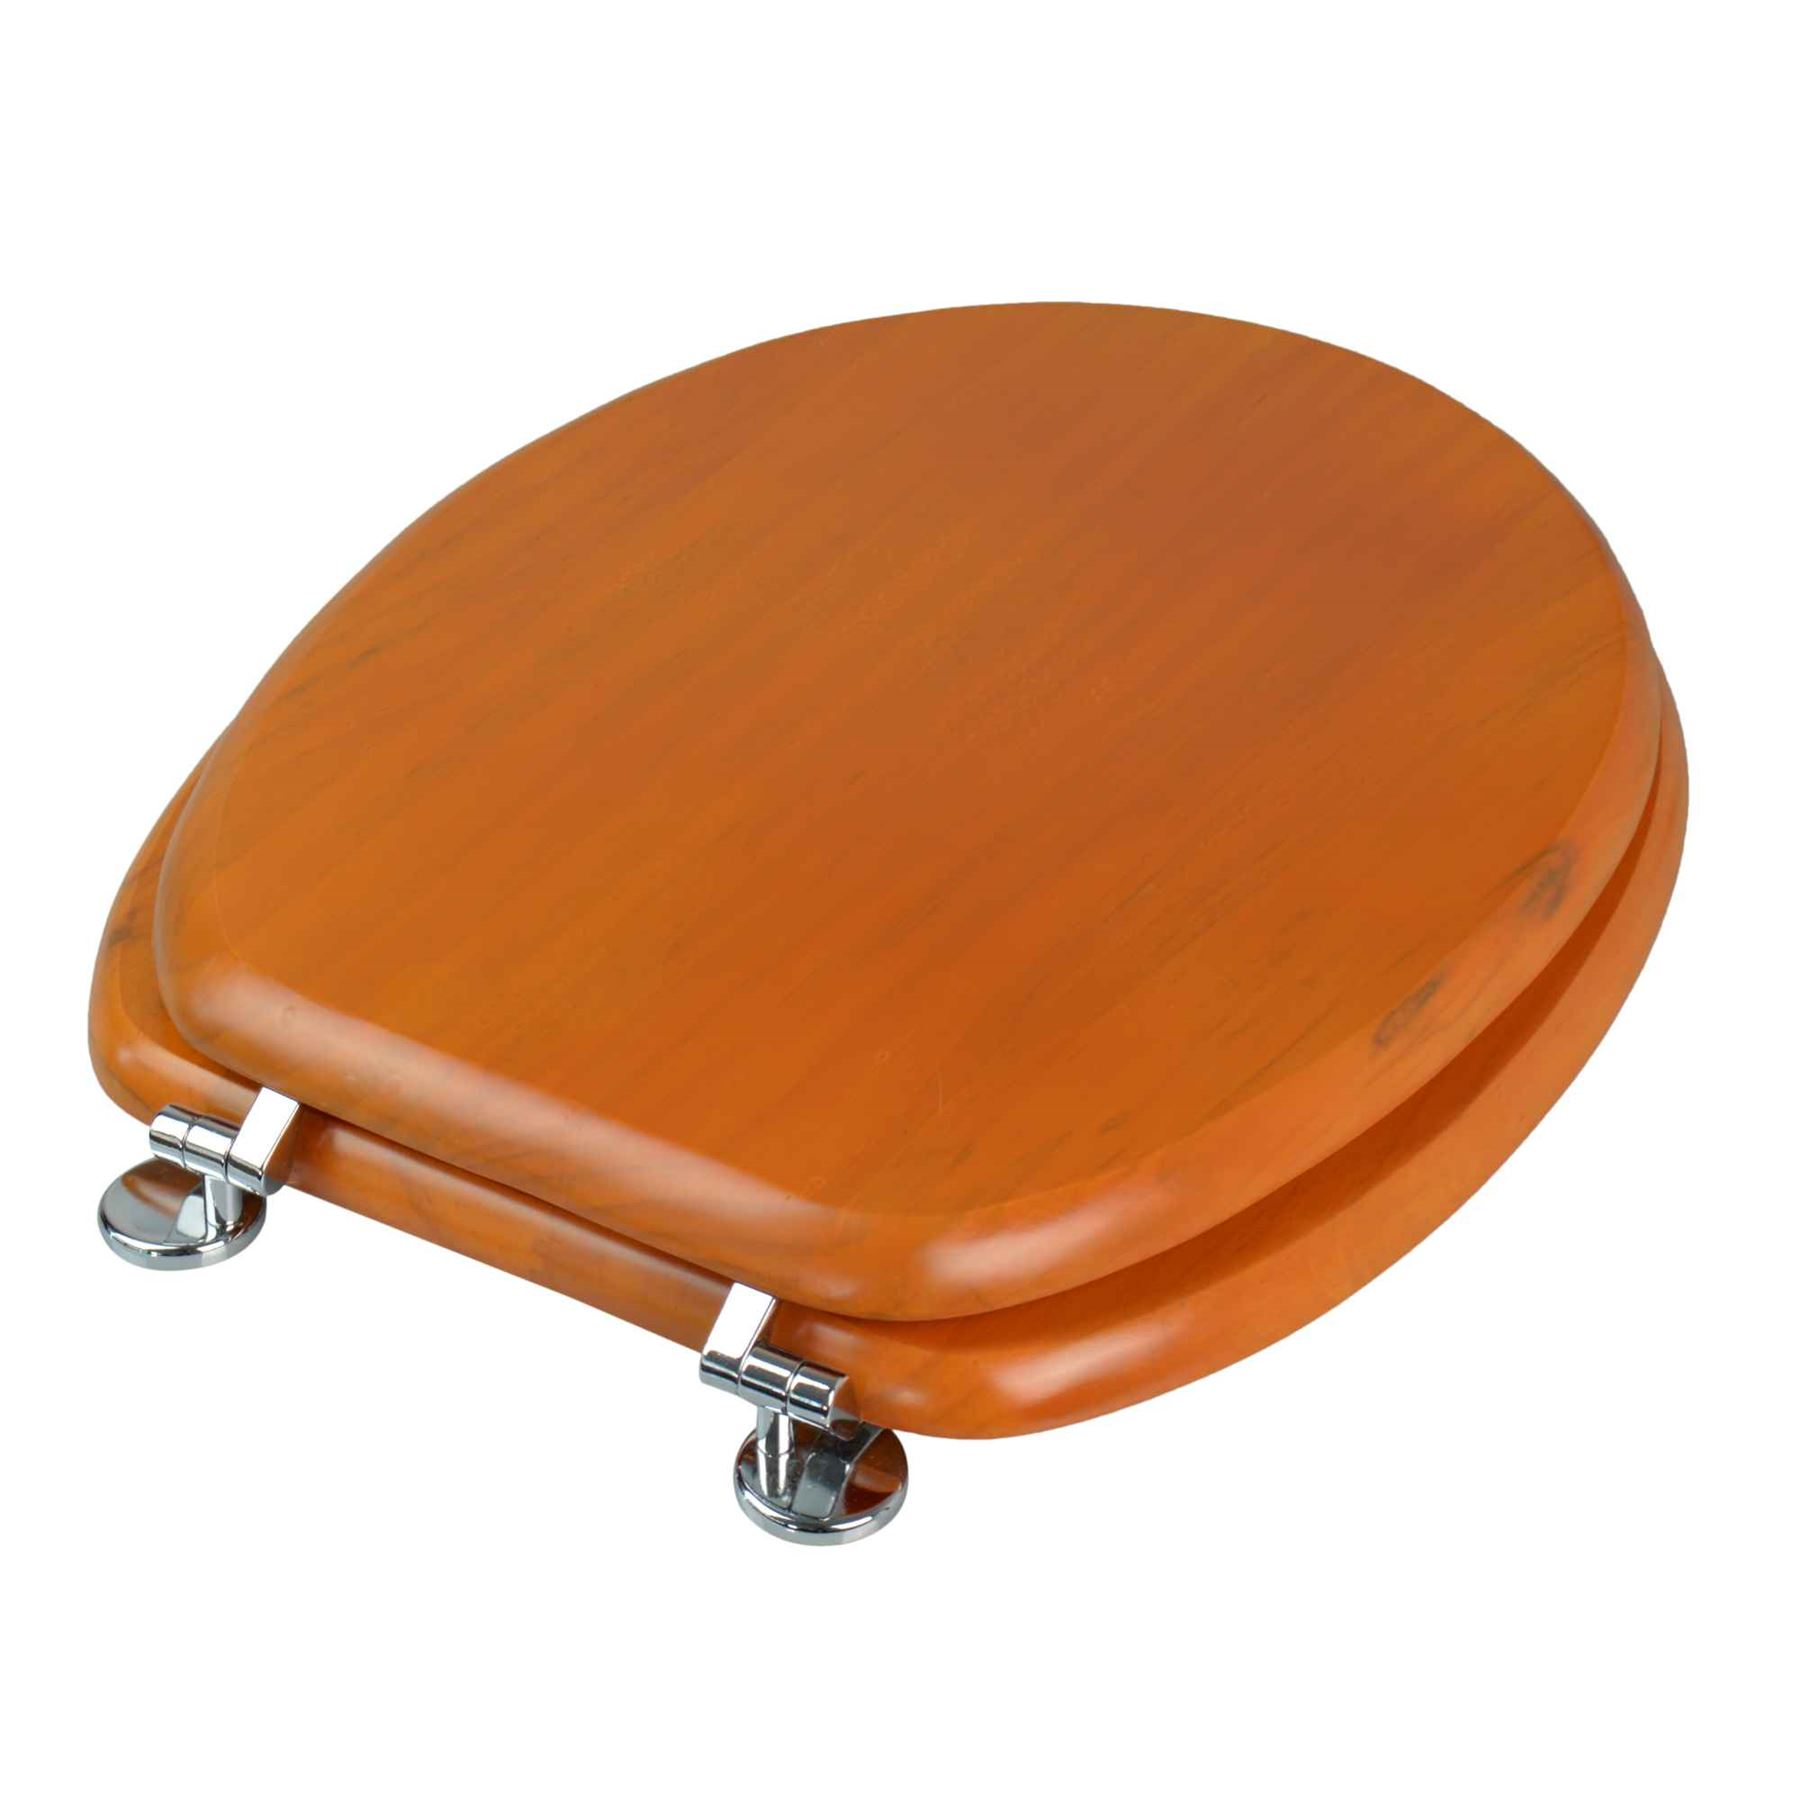 Prime Details About Wooden Bathroom Toilet Seat Dark Pine Colour Fixings Included Spiritservingveterans Wood Chair Design Ideas Spiritservingveteransorg